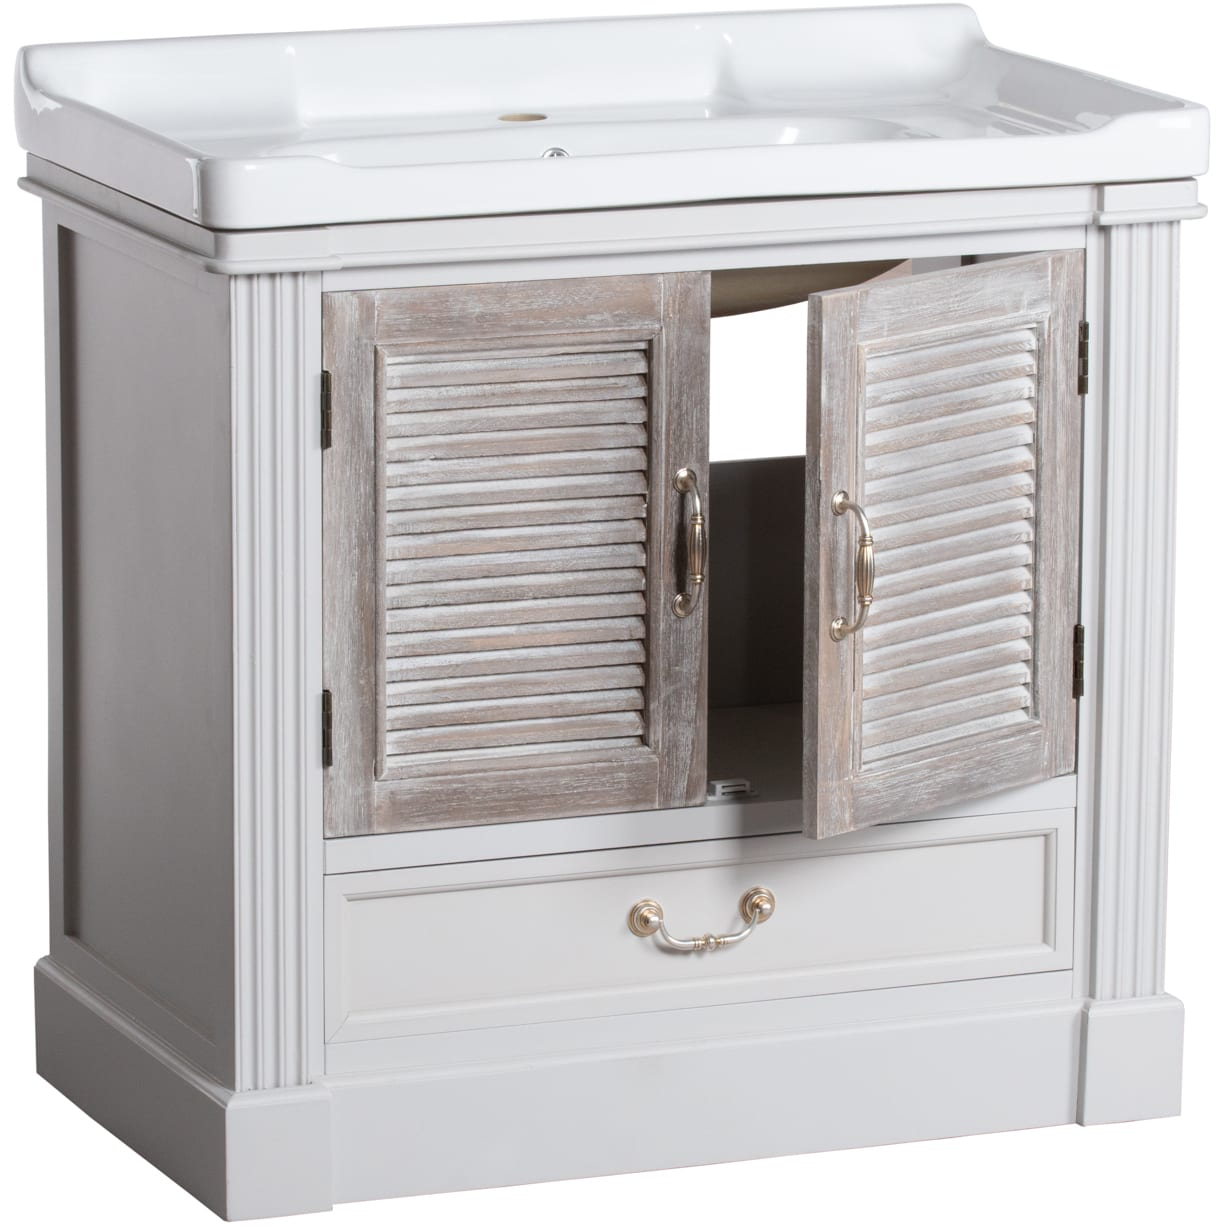 Honfleur Vanity Sink Unit With Louvred Doors